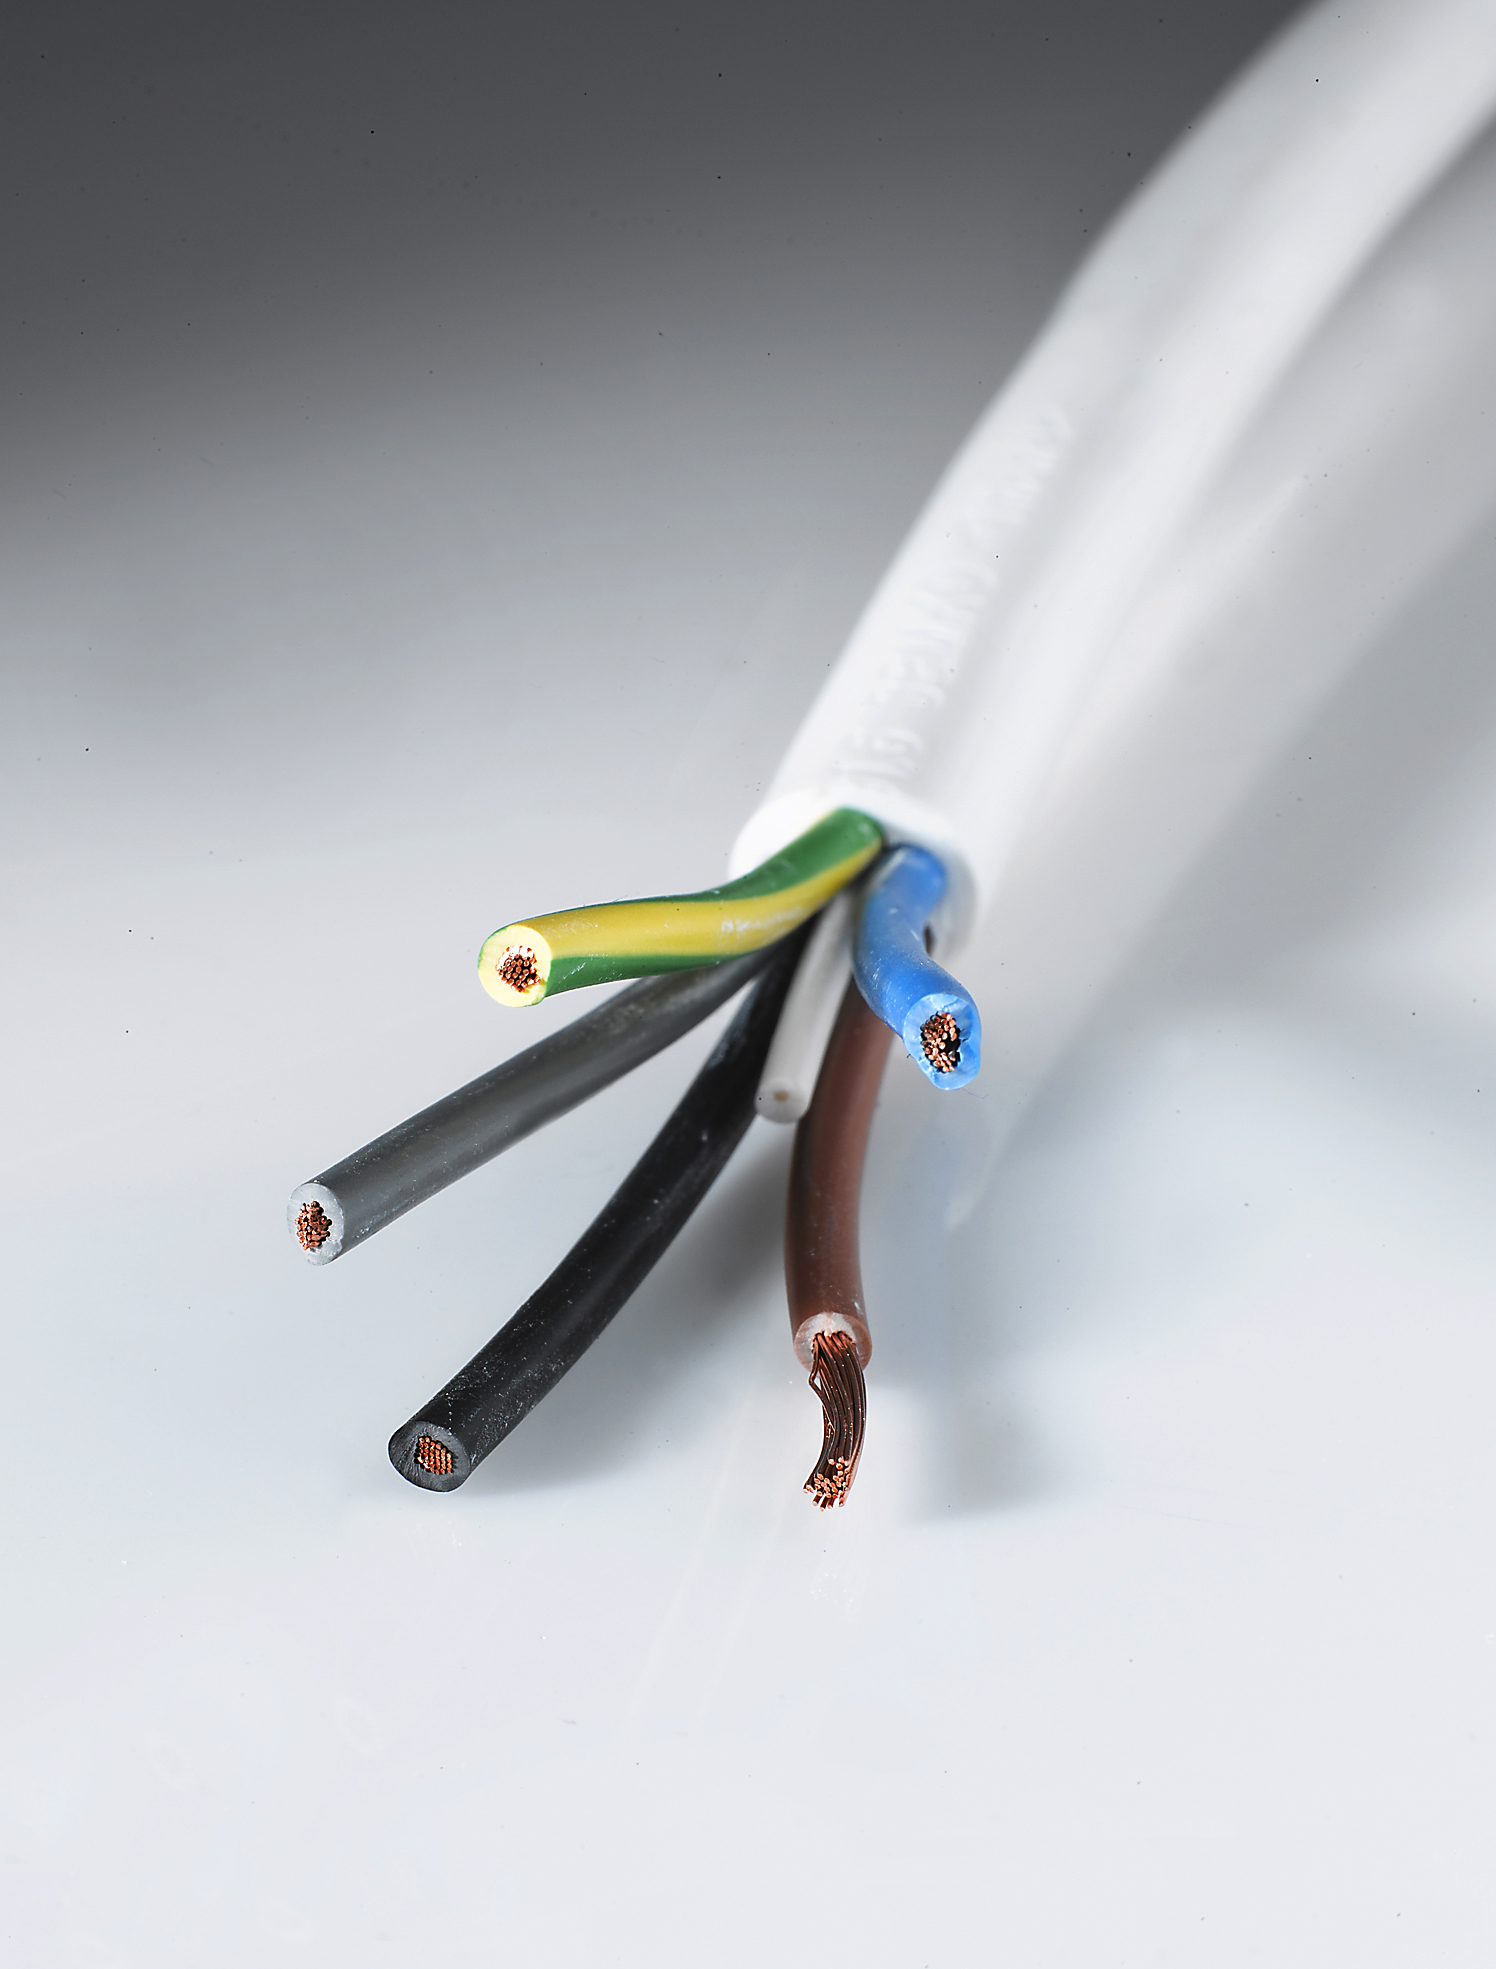 Flexible appliance and harmonized cable